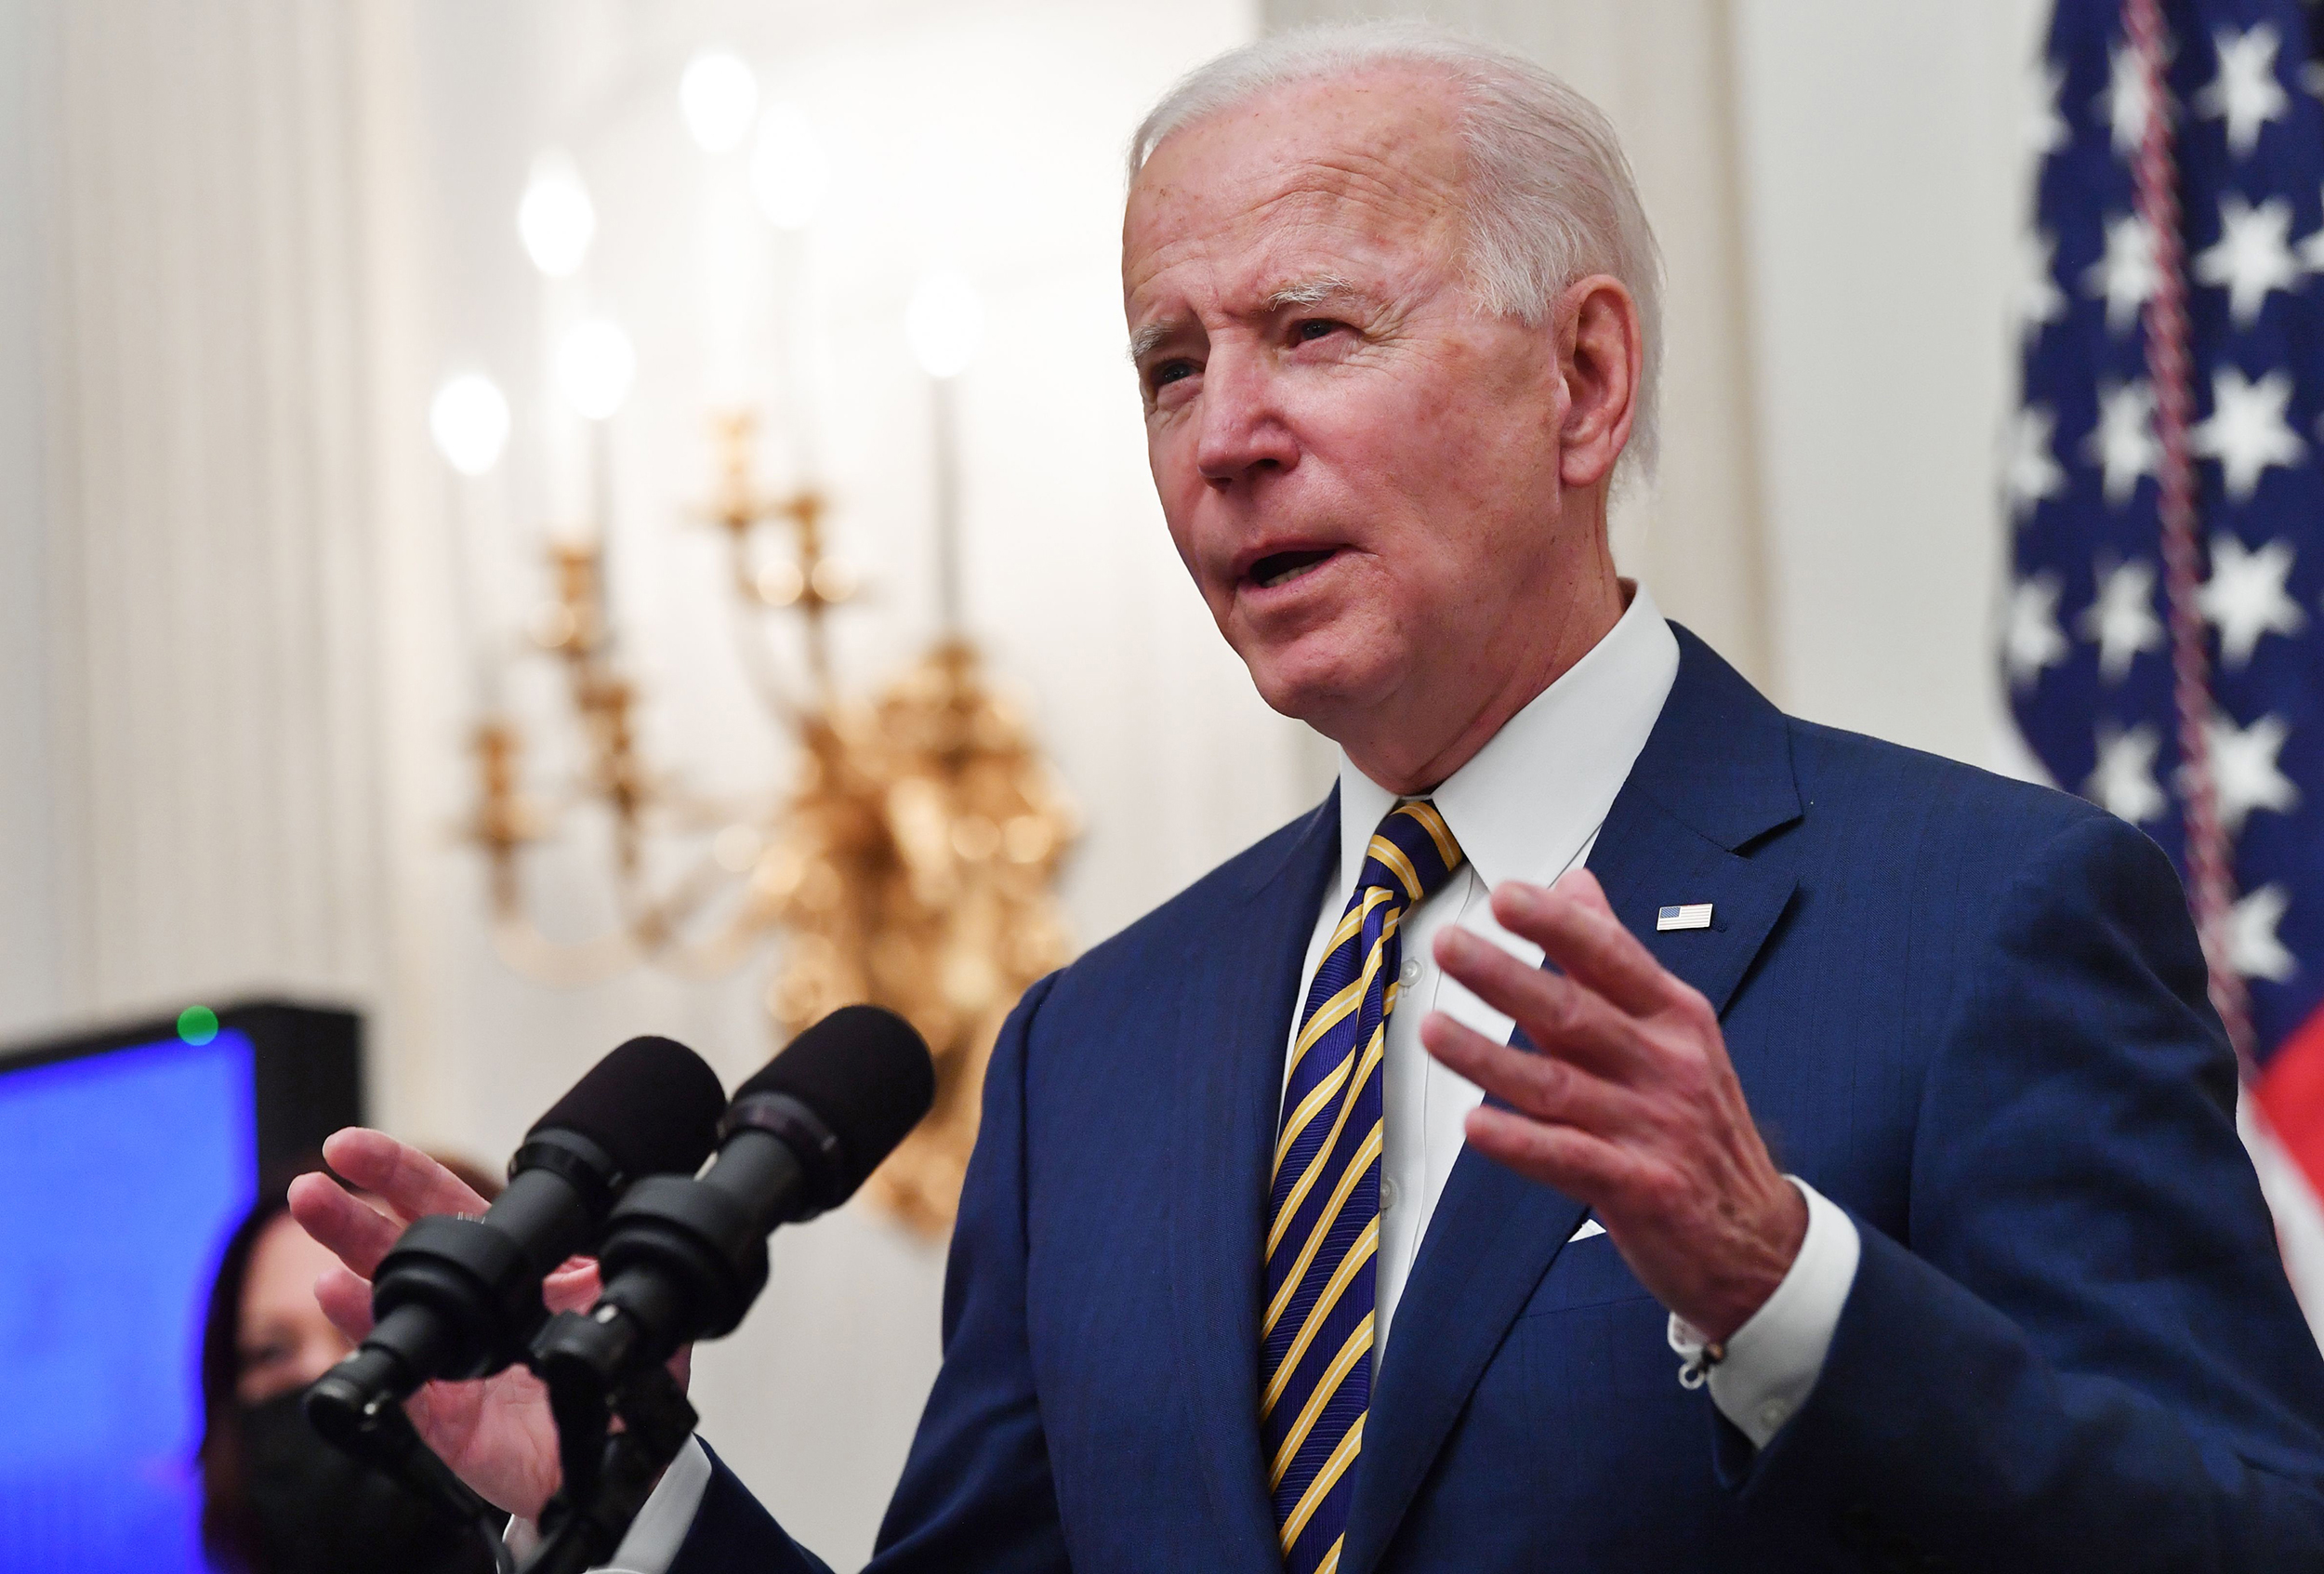 Biden's push for bipartisanship faces early test